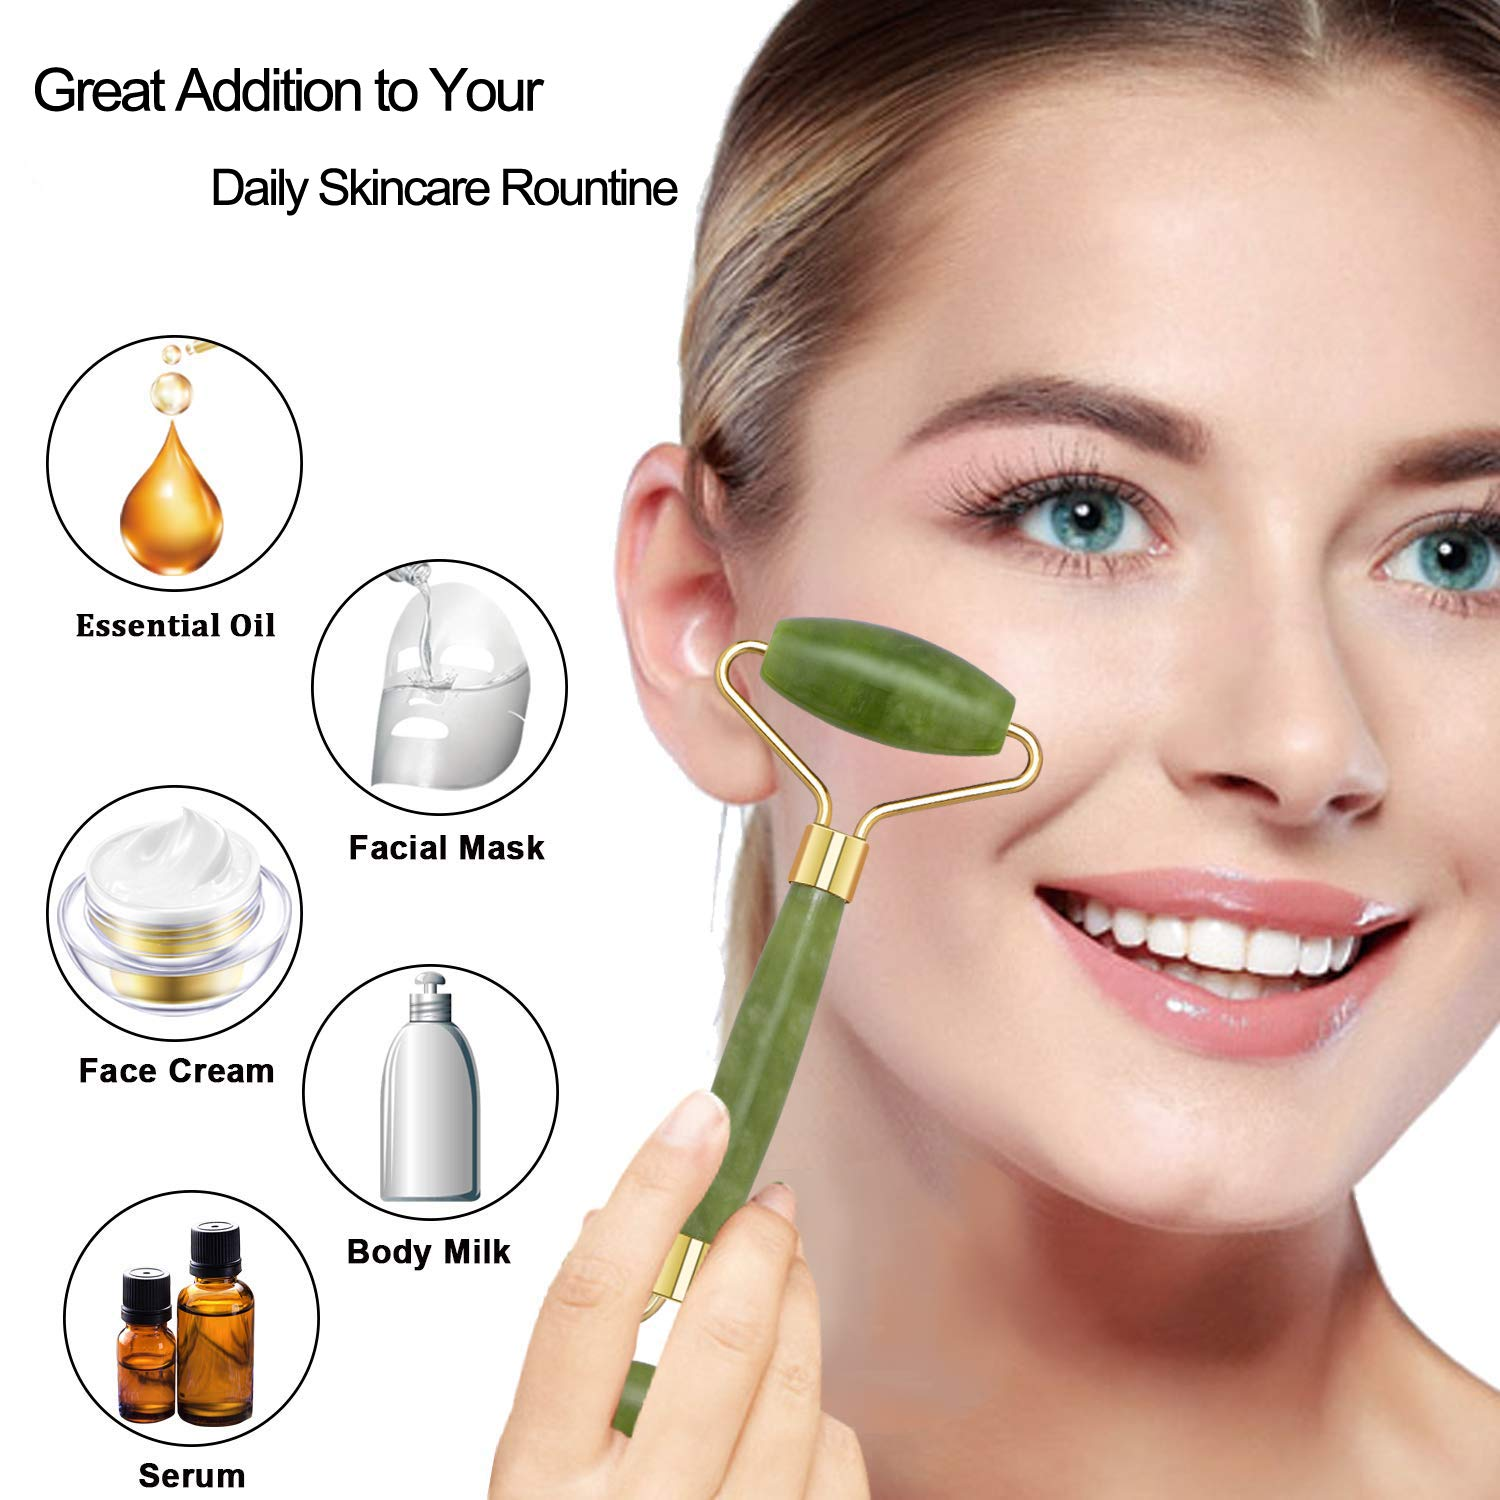 Jade Roller & Gua Sha Scraper for Face Massage - 3 in 1 Facial Jade Stone Set for Anti-aging, Slimming & Firming - 100% Real Natural Face Eye Neck Roller - Anti Wrinkle Facial Skin Massager